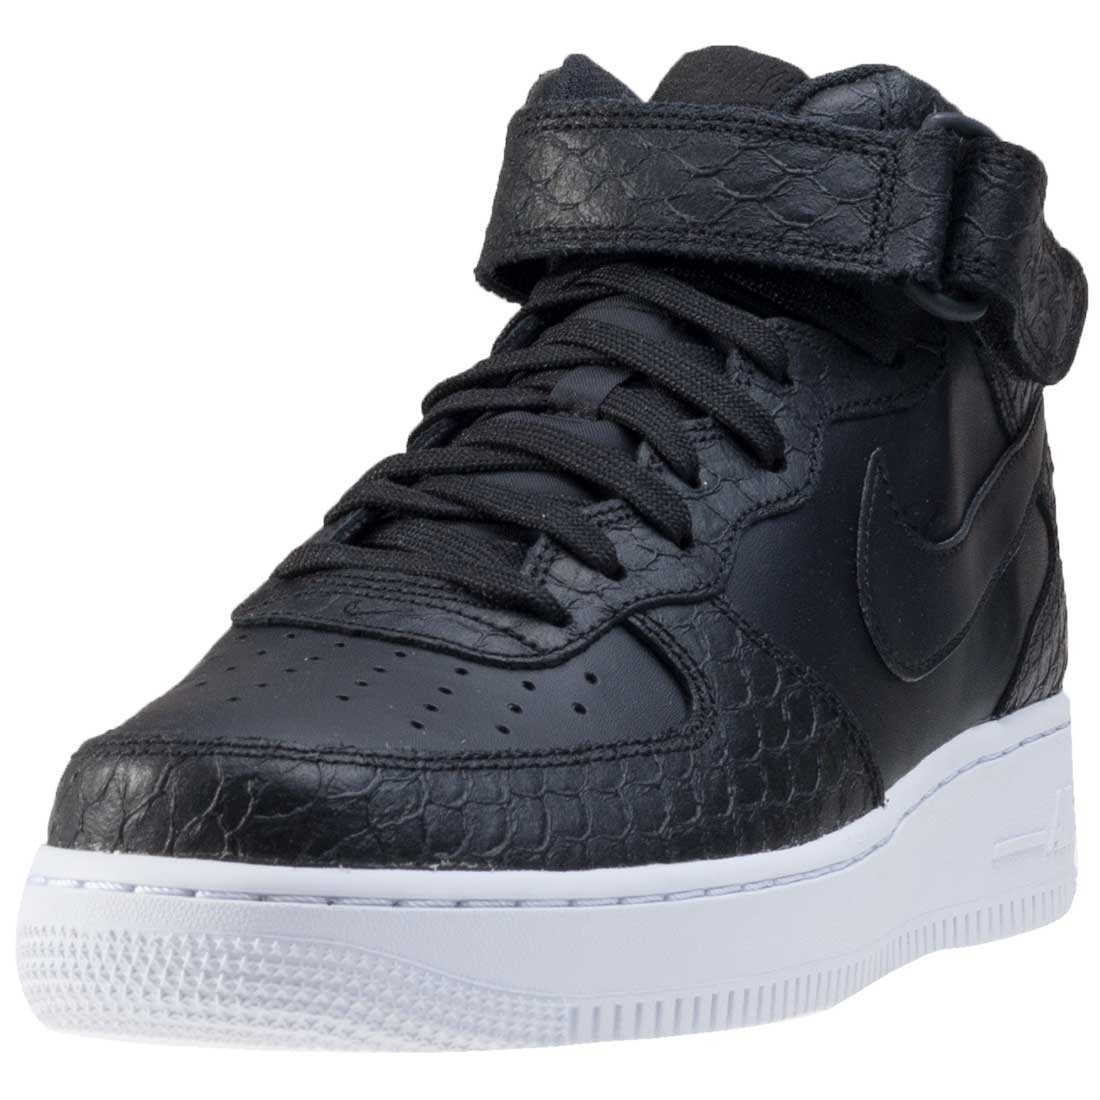 achat Homme Leather Vente Nike Air Mid 1 Force Chaussures 07 xwRw6qpU0